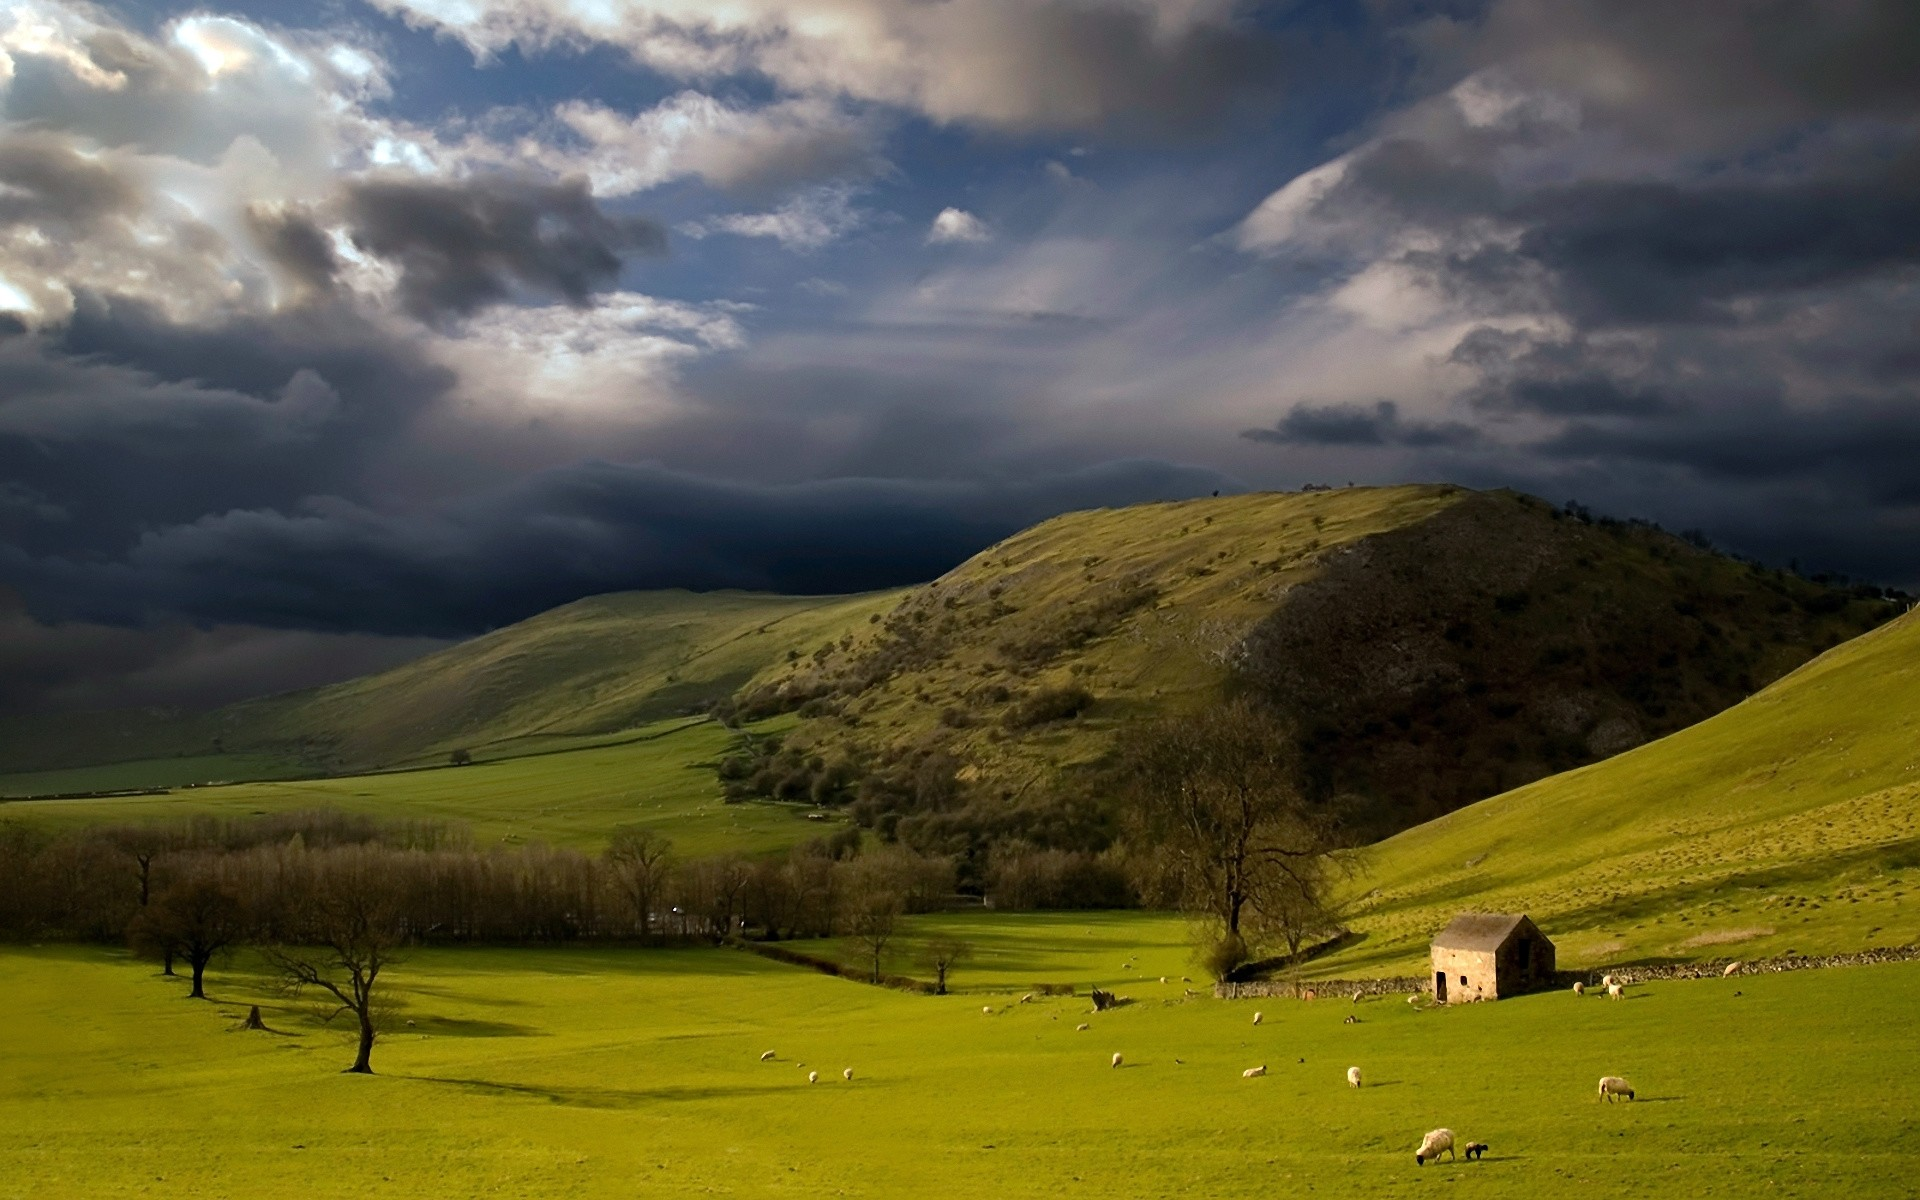 Wallpaper Height, Mountains, Slopes, Pasture, Cloudy, Sky, Storm, Clouds,  Sheep, Bad weather, Green